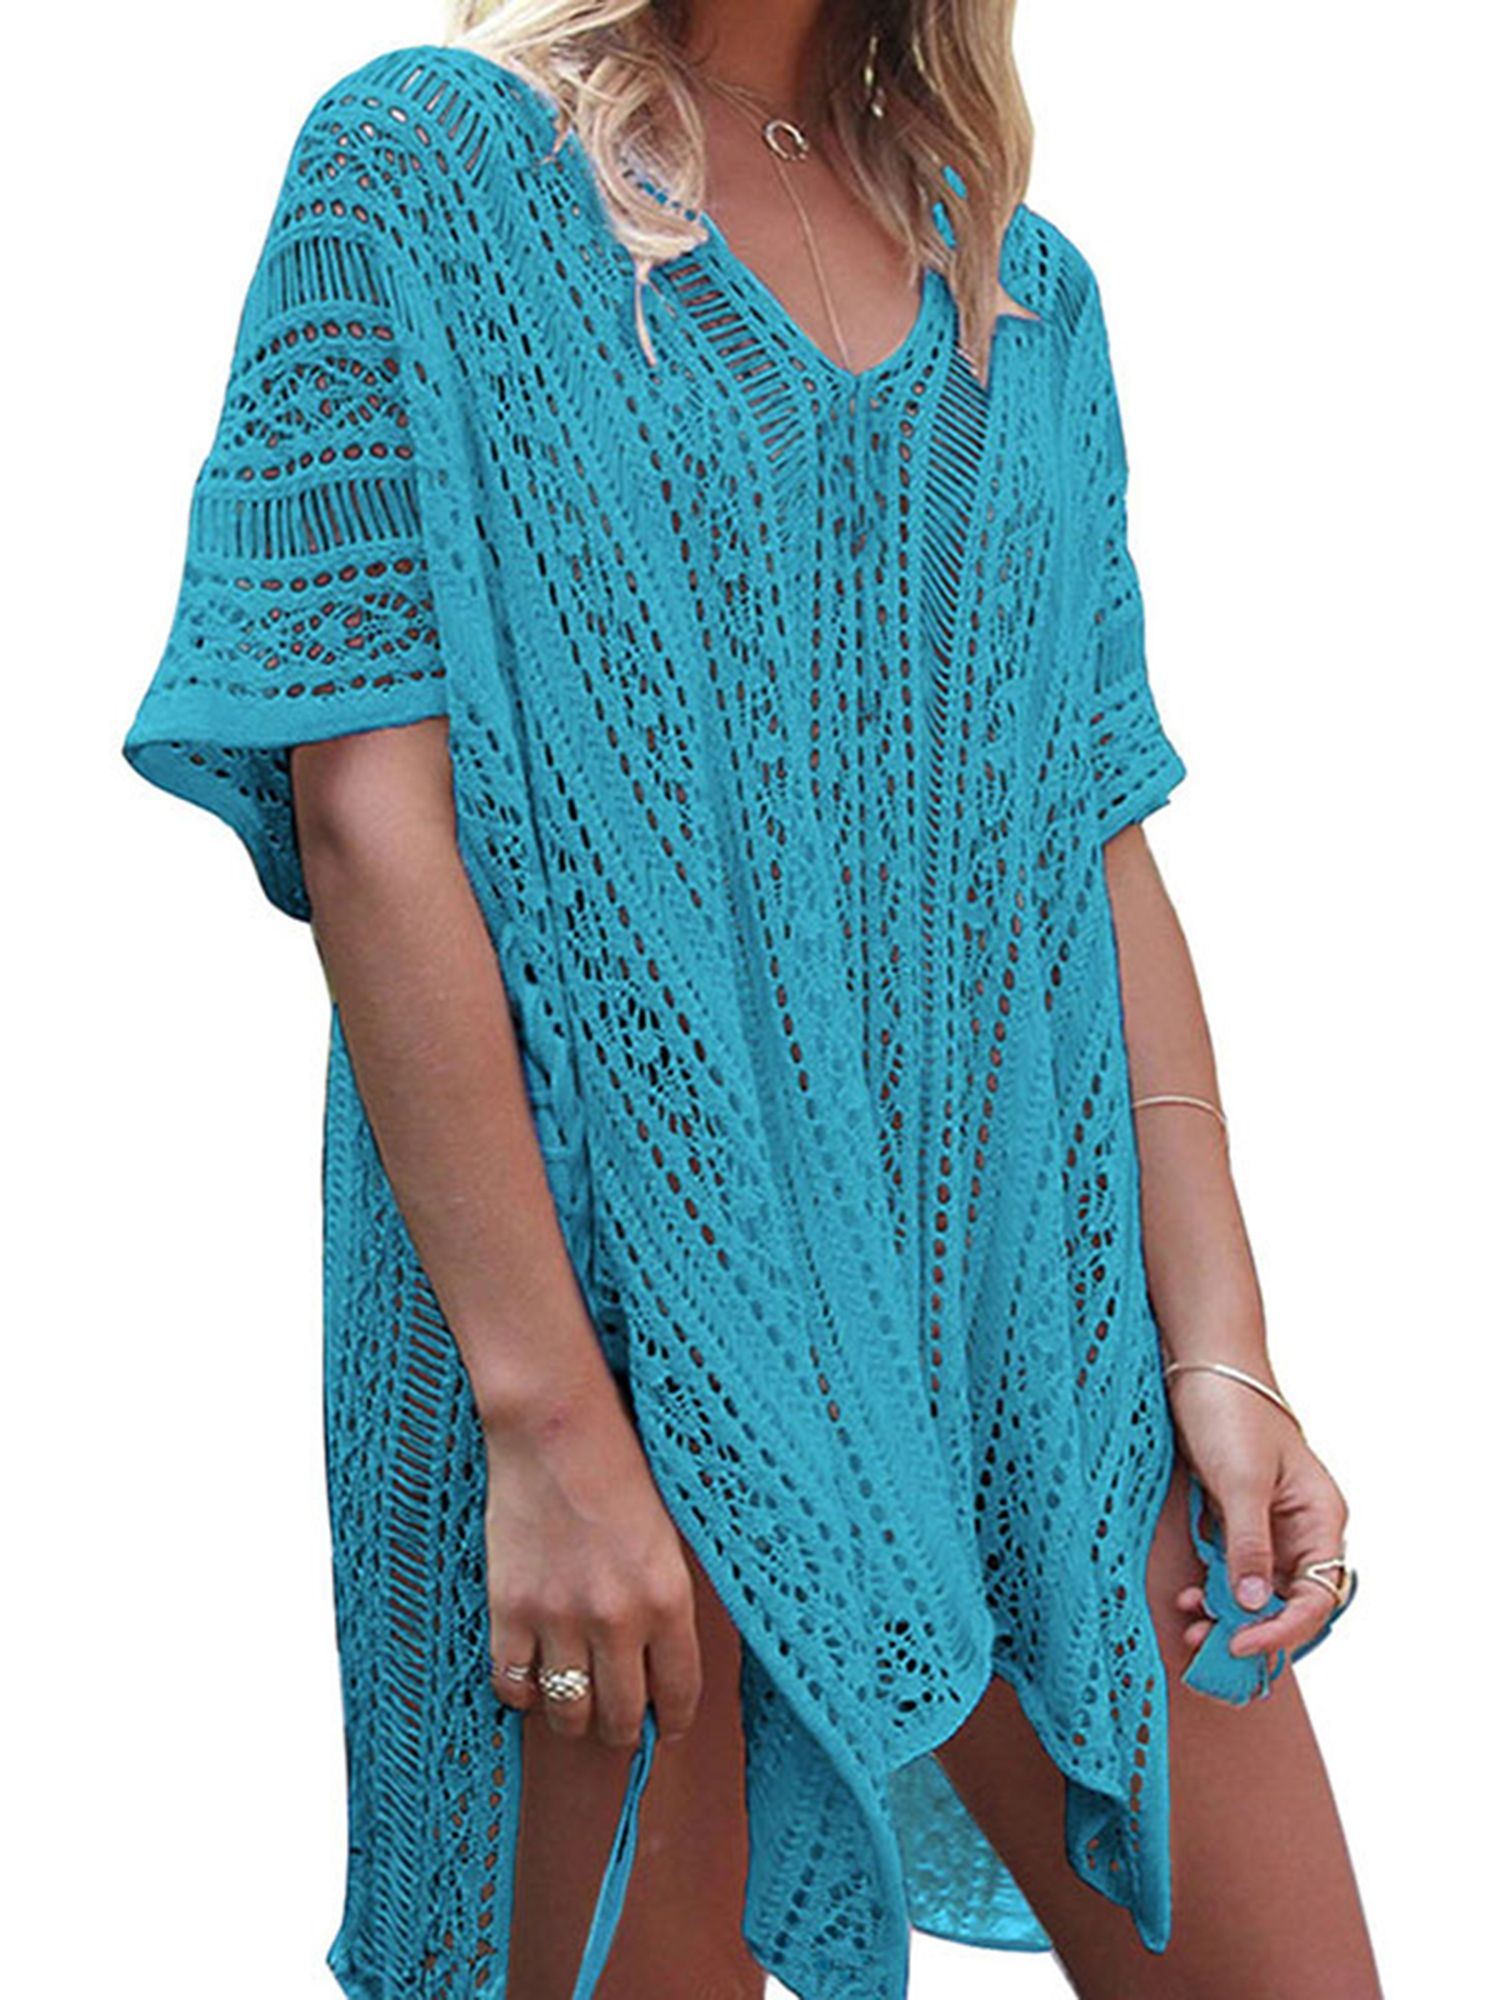 Women V-neck Hollow Out Swimwear Swimsuit Cover Ups Loose Knitted Beach Shirts Blouses & Shirts